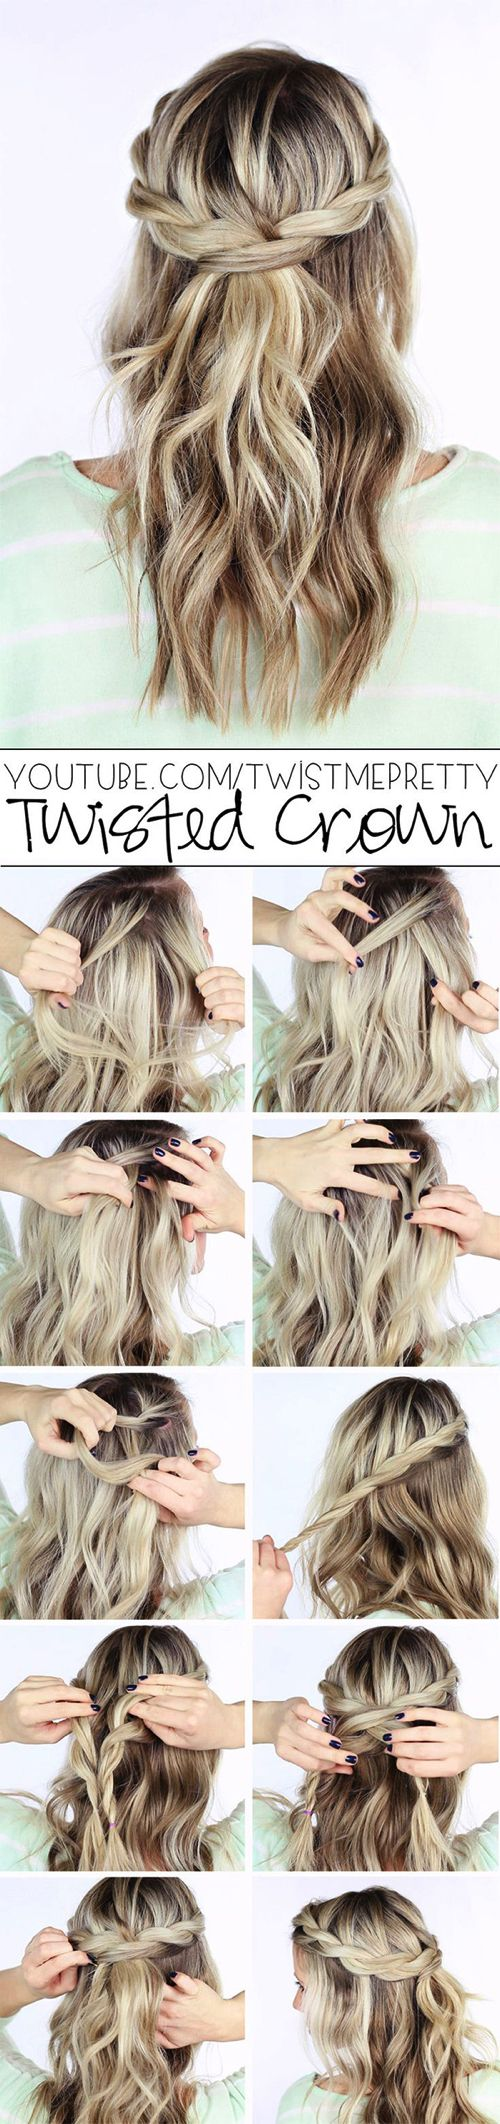 Pin by hara anastasiou on hair pinterest twist hair boho hippie